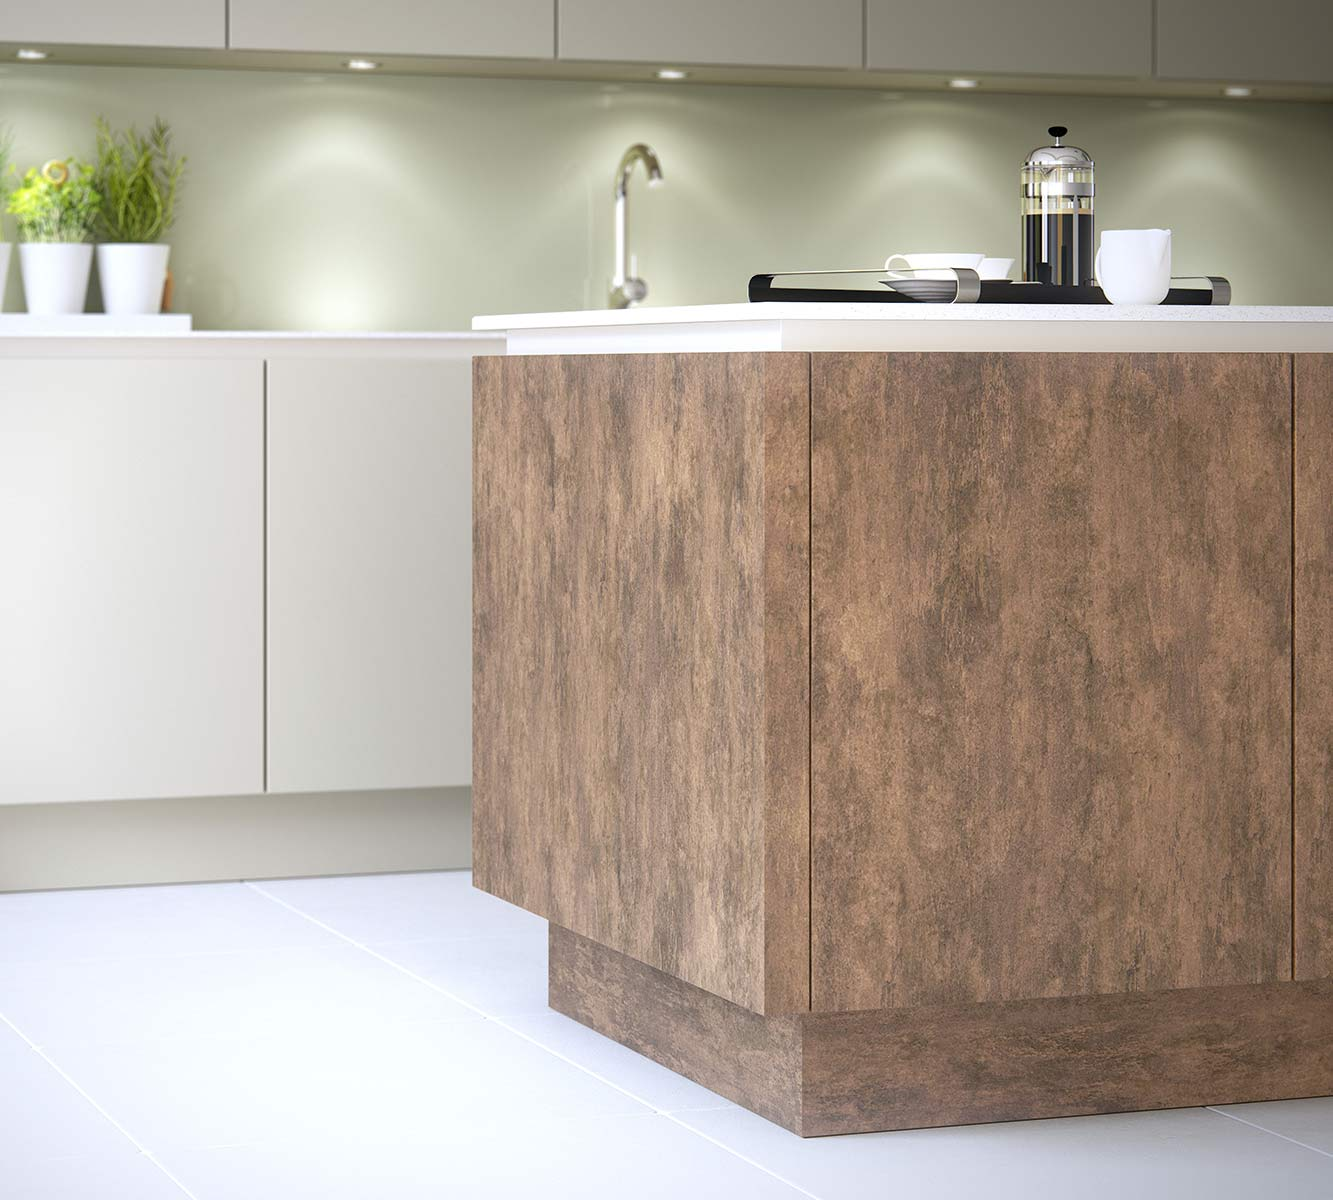 Masterclass Kitchens Blackburn H line hampton highland stone deco copper oxide1